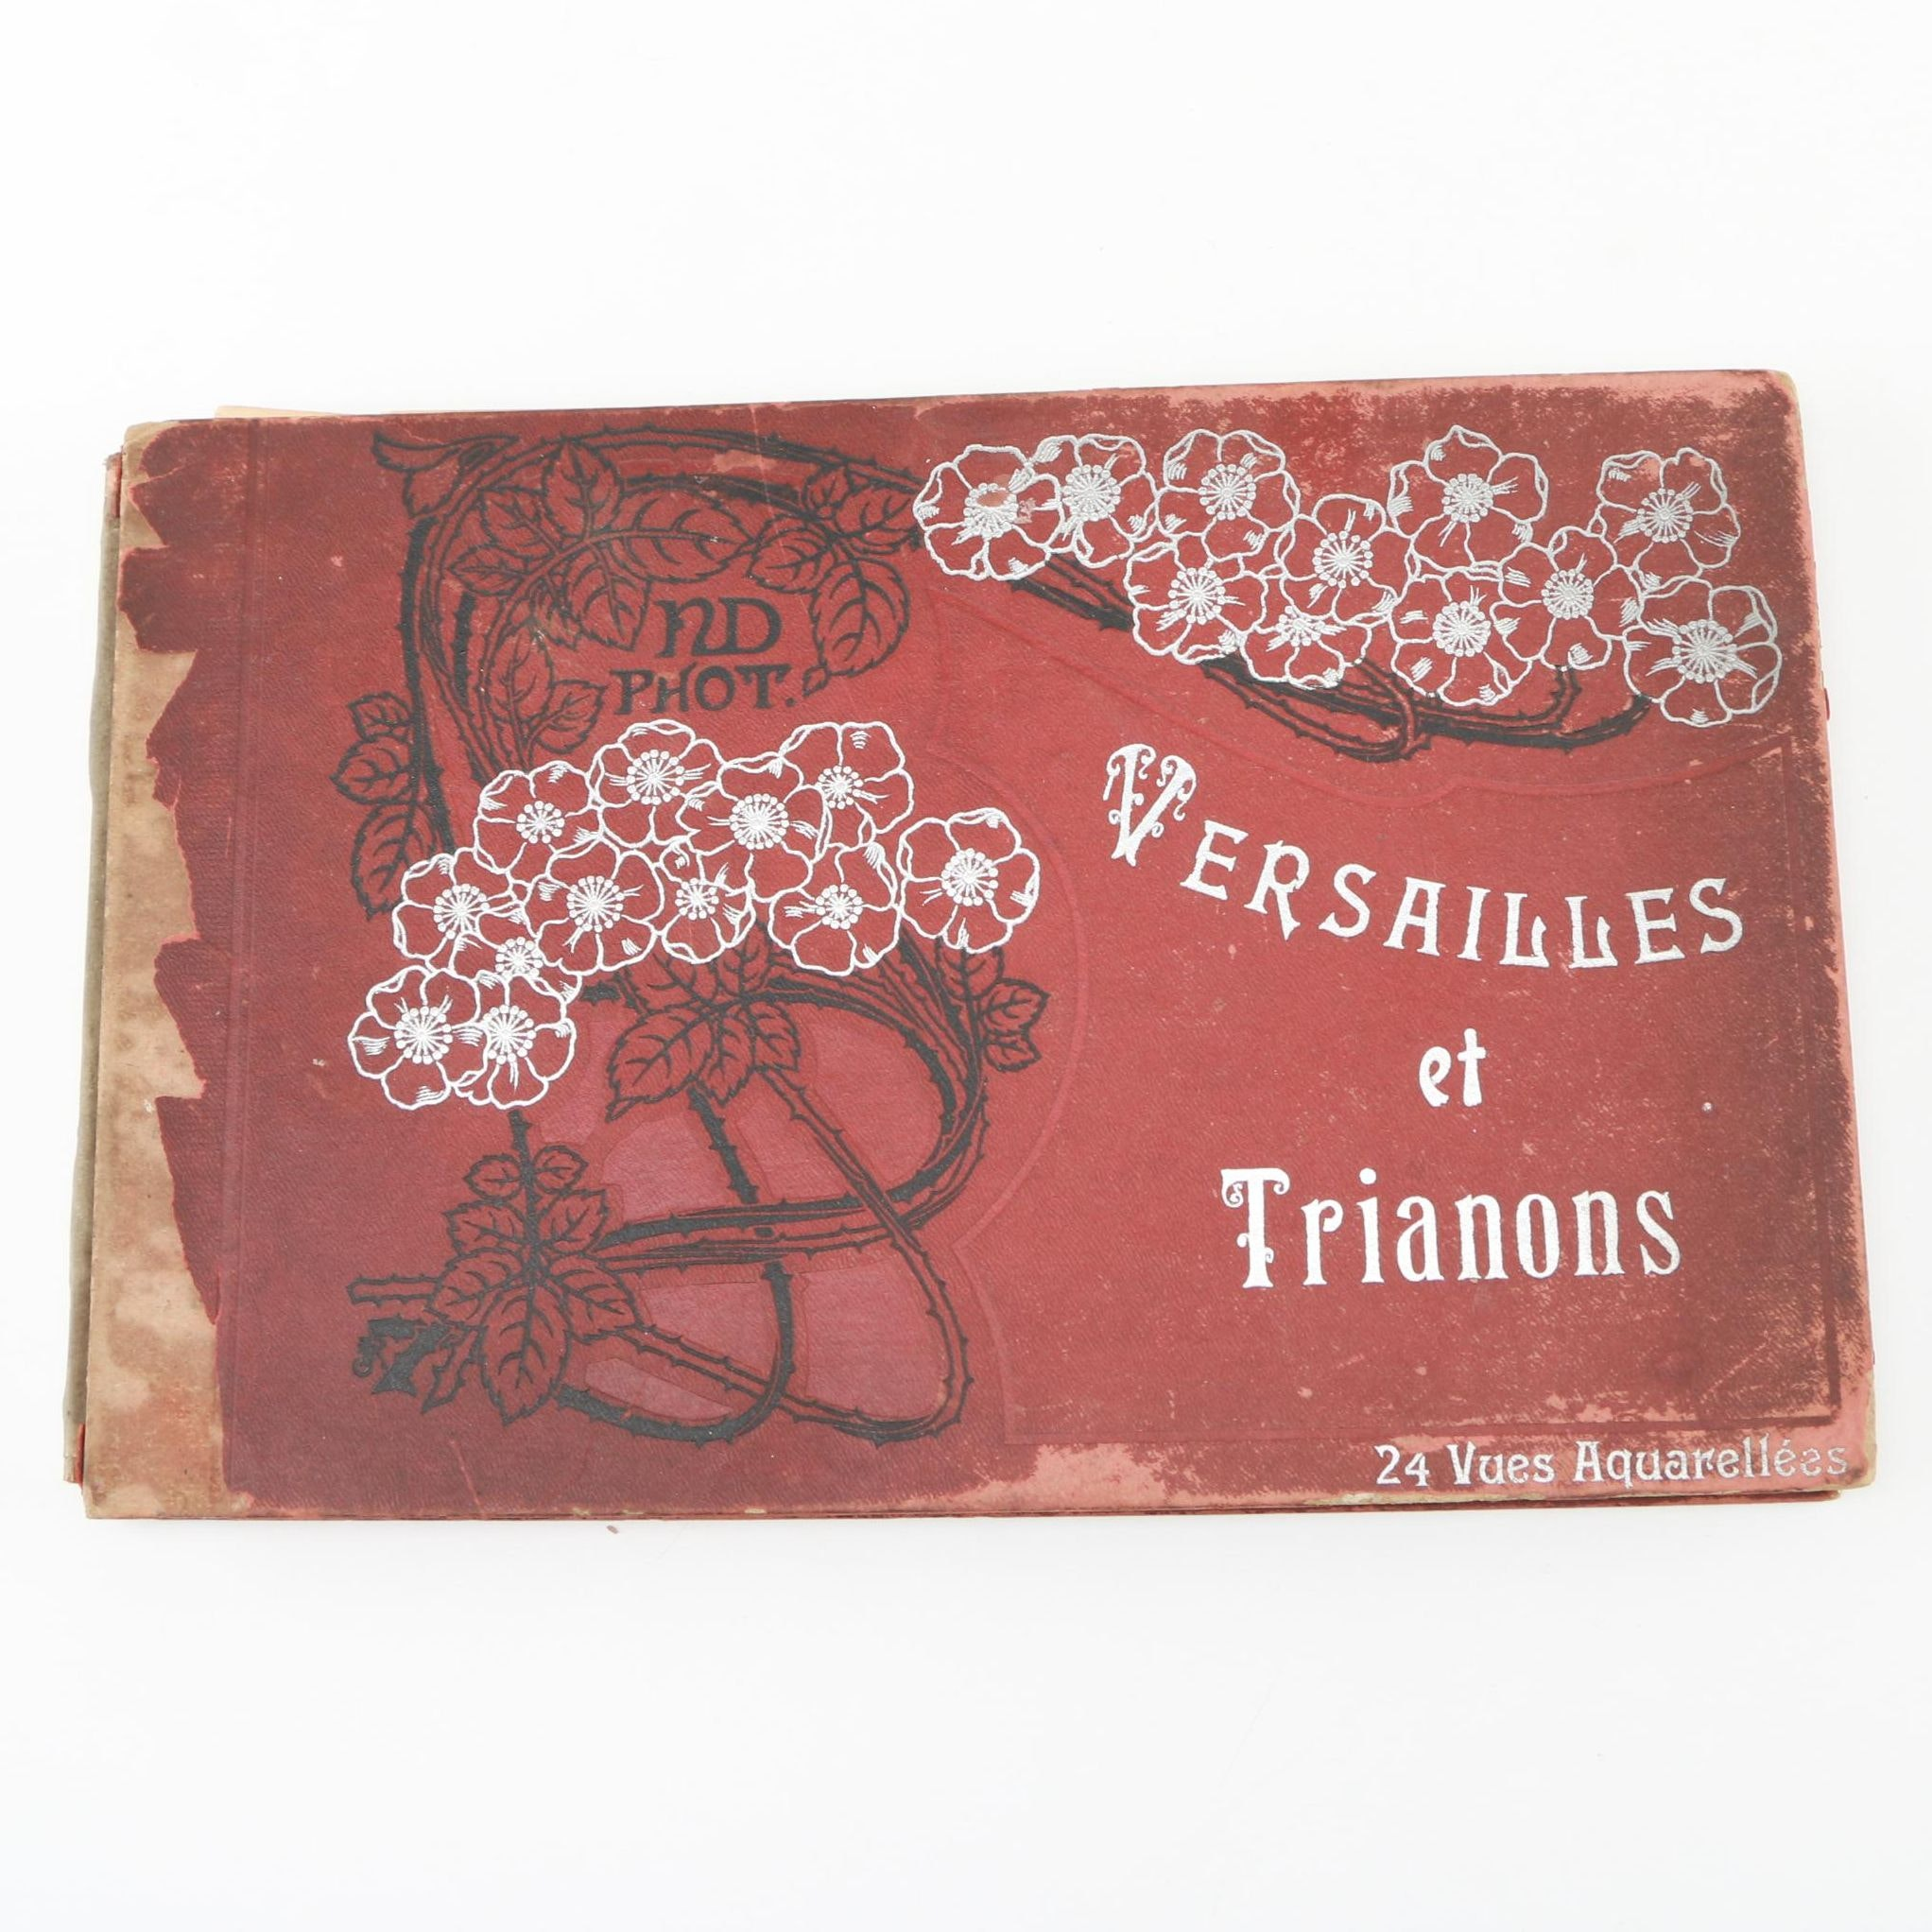 """Circa 1900 French Photogravure Edition of """"Versailles et Trianons"""""""